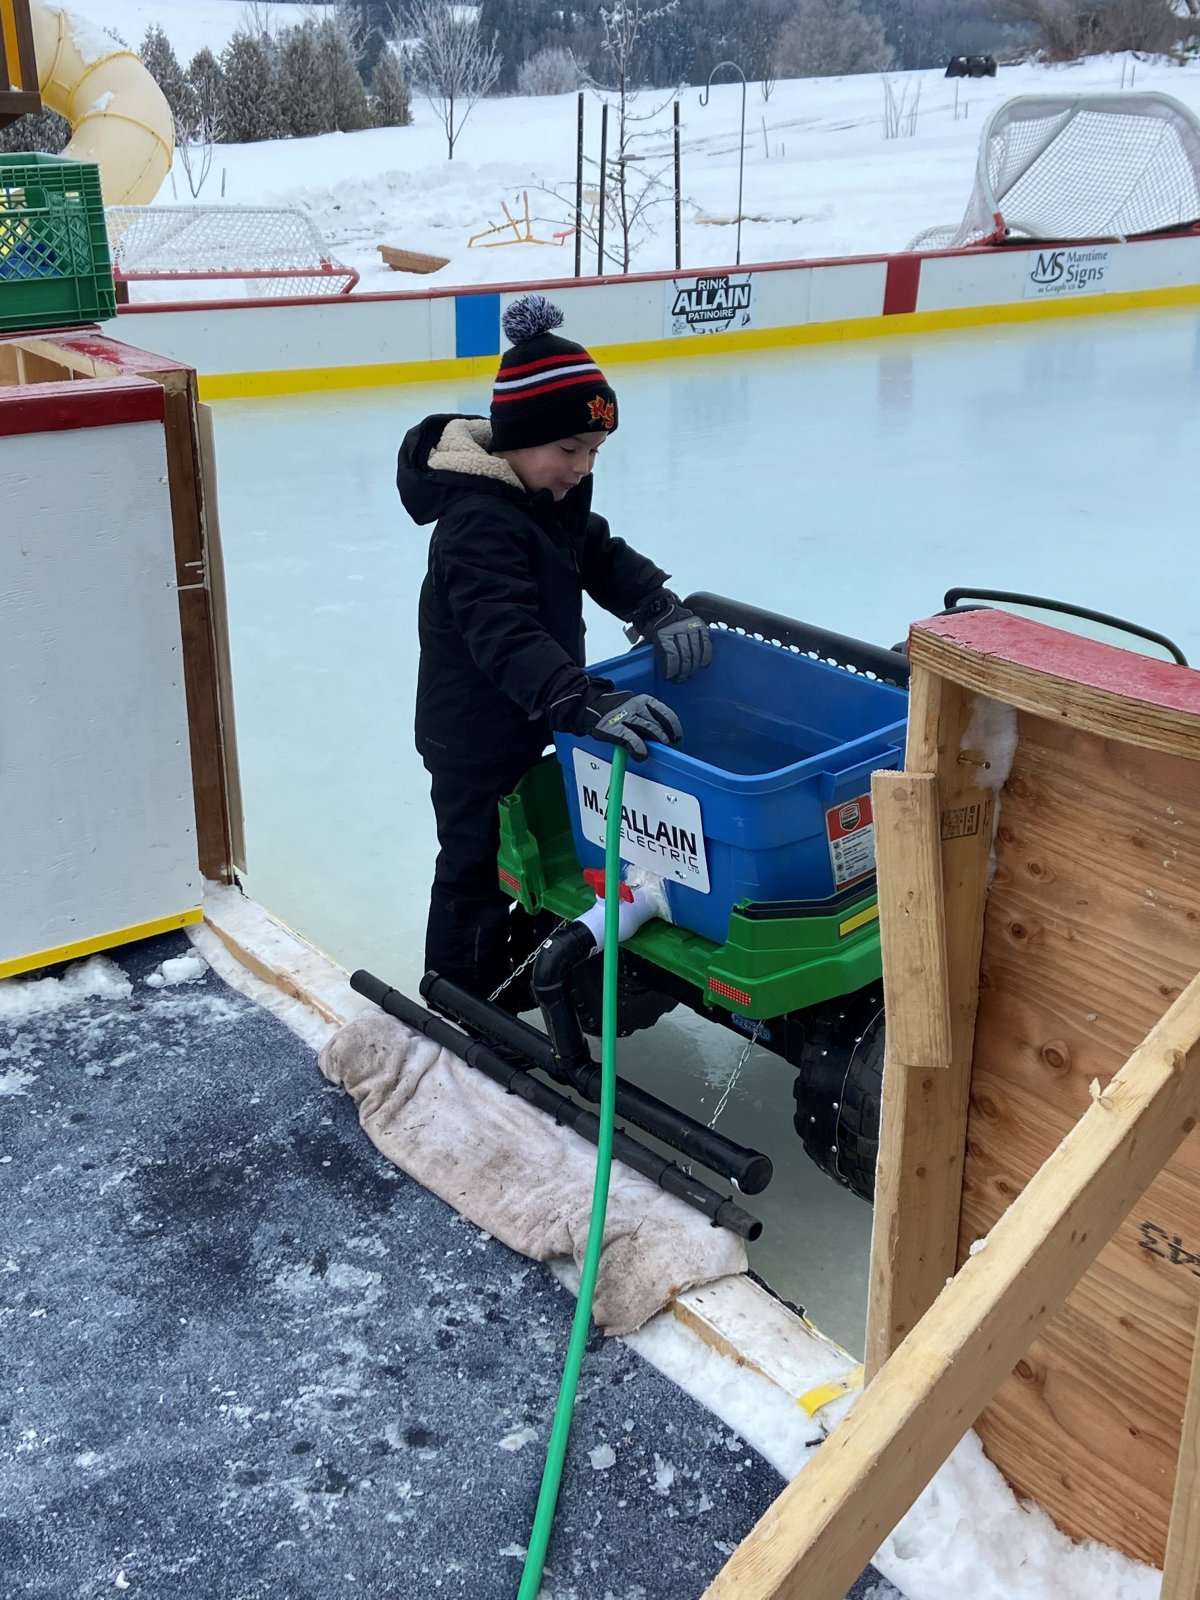 Five-year-old Nicholas Allain is seen getting ready to clear the ice in his min-Zamboni.